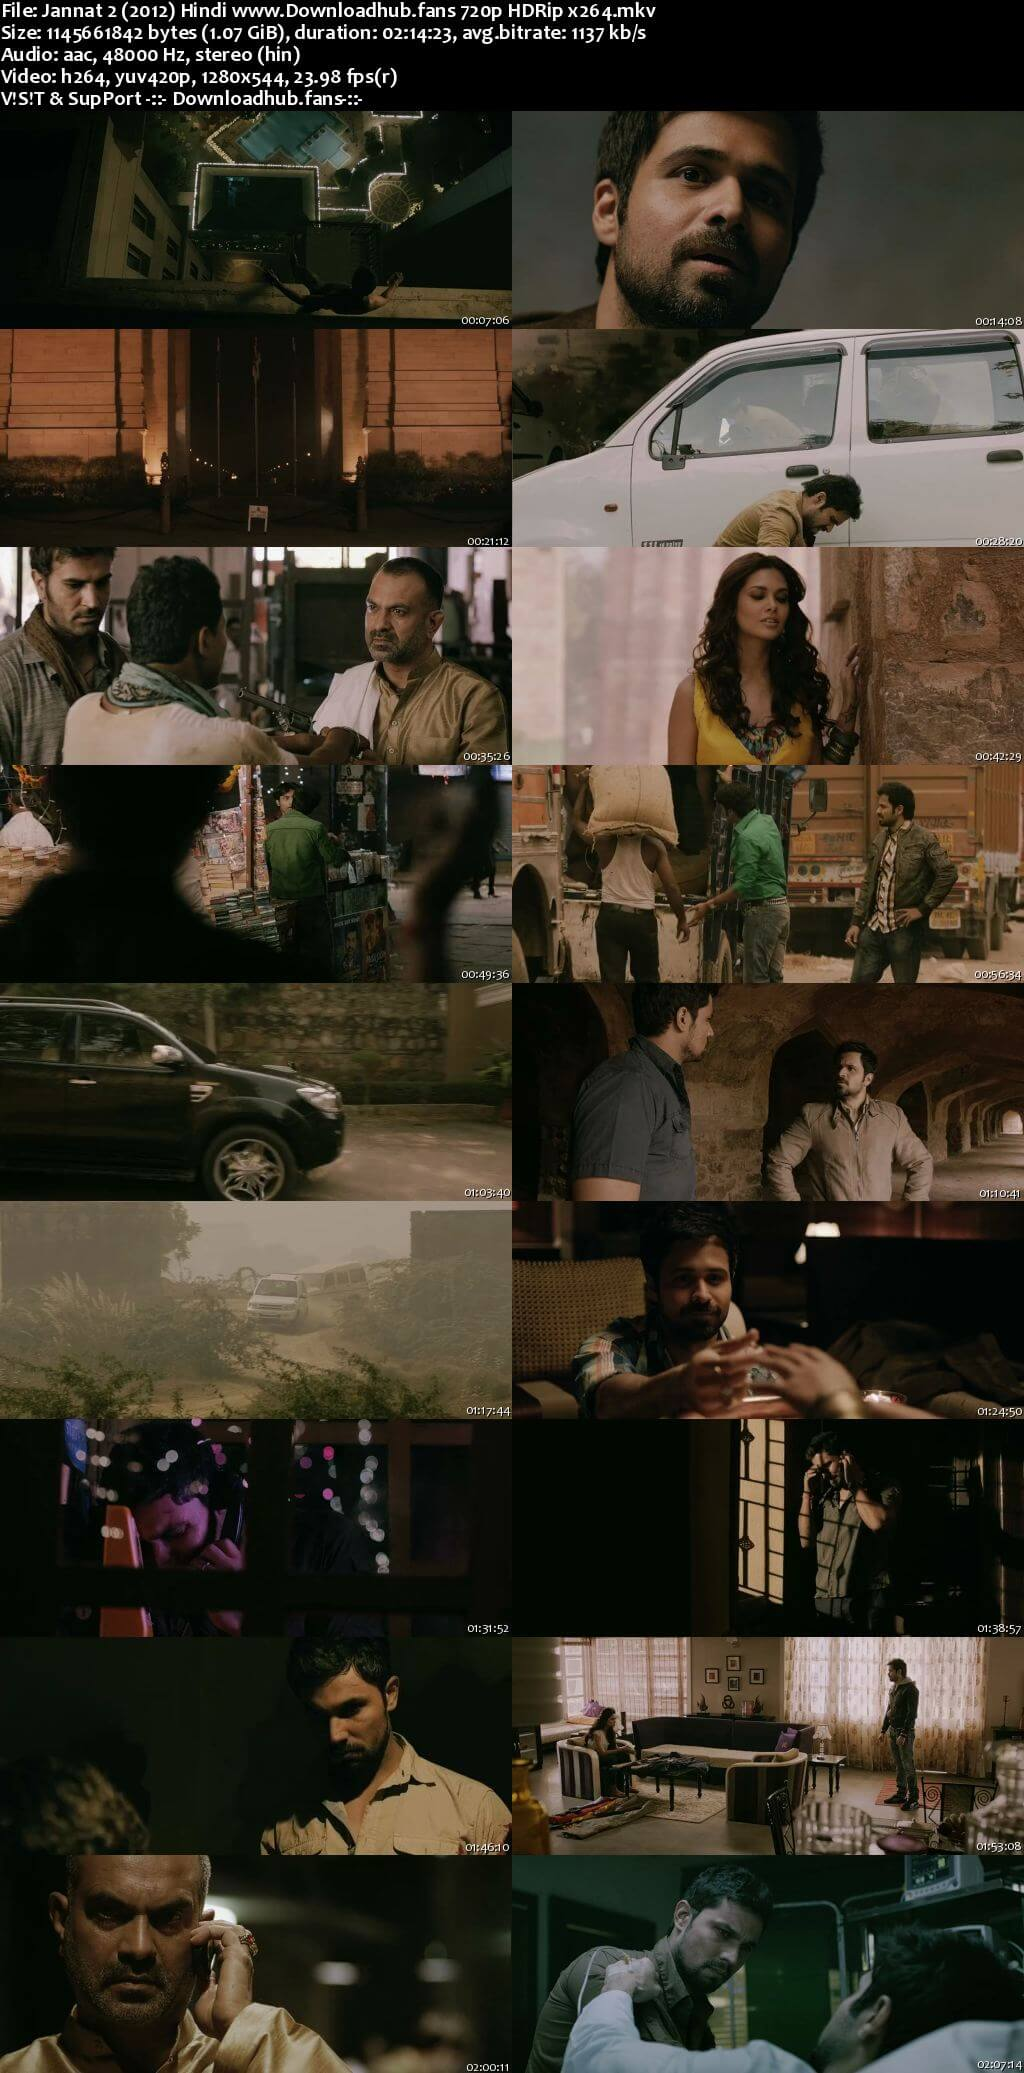 Jannat 2 2012 Hindi 720p HDRip x264